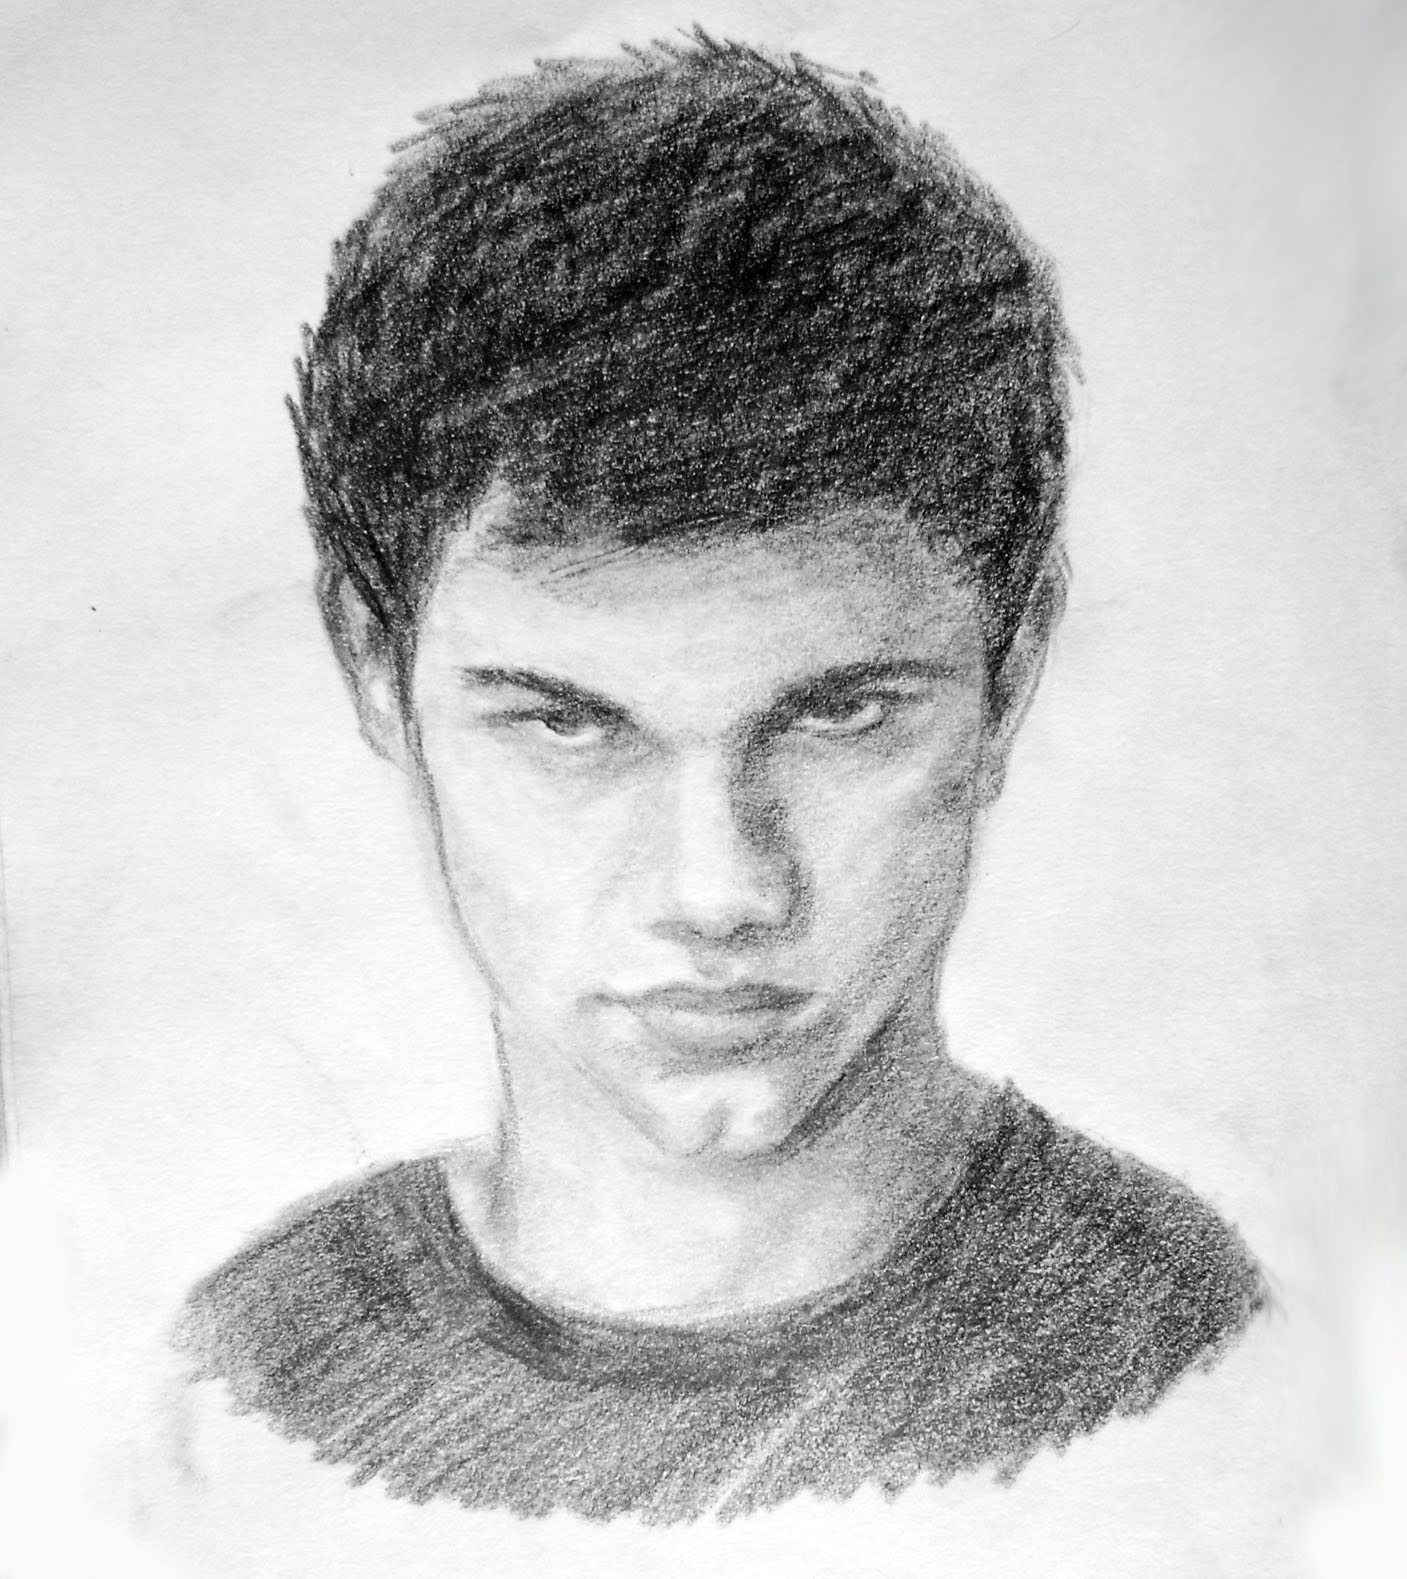 Jacob Twilight Coloring Book Pages Pictures to Pin on Pinterest